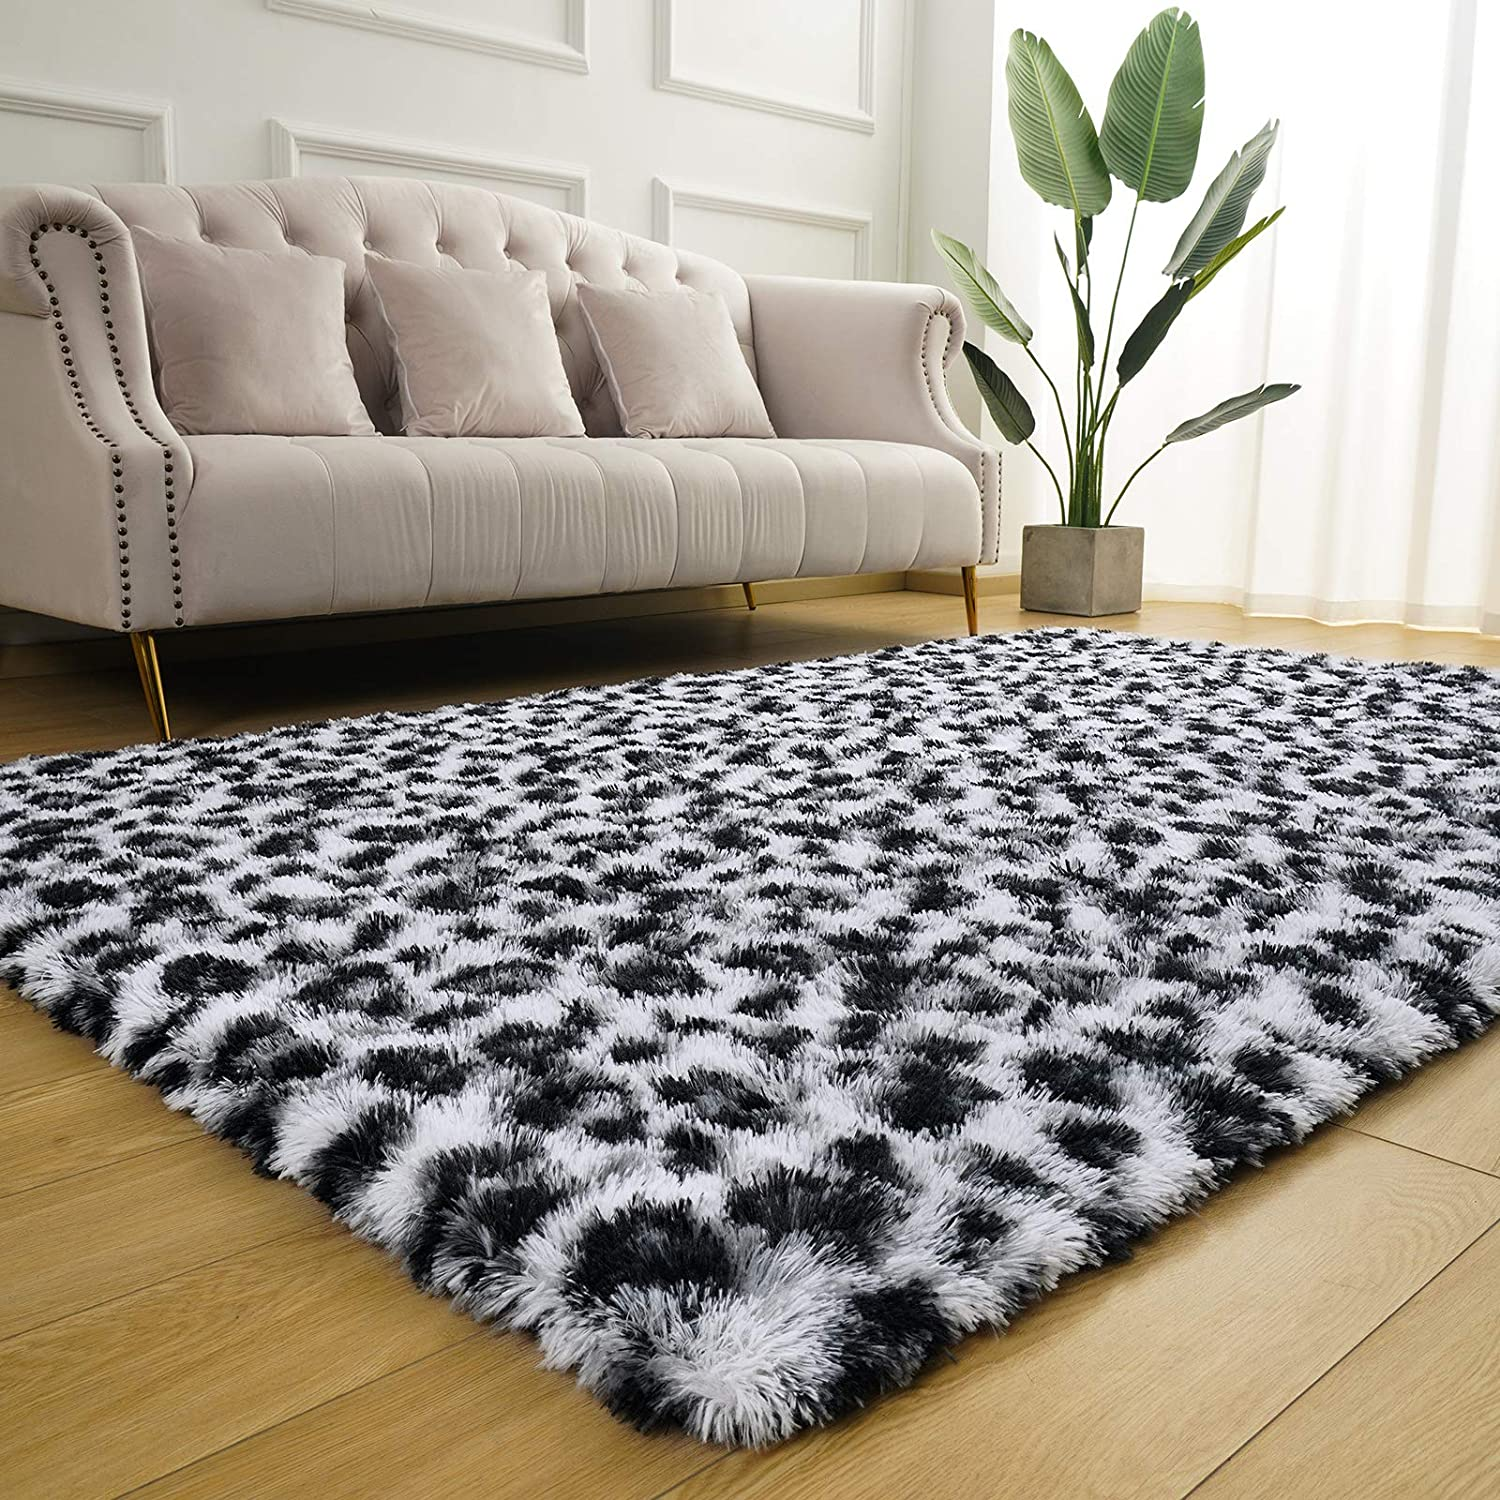 BENRON Fluffy Leopard Area Rug, 4x5.9 Feet Leopard Print Rugs for Bedroom Living Room Western Decor, Shaggy Black and White Animal Carpets for Kids Girls Nursery